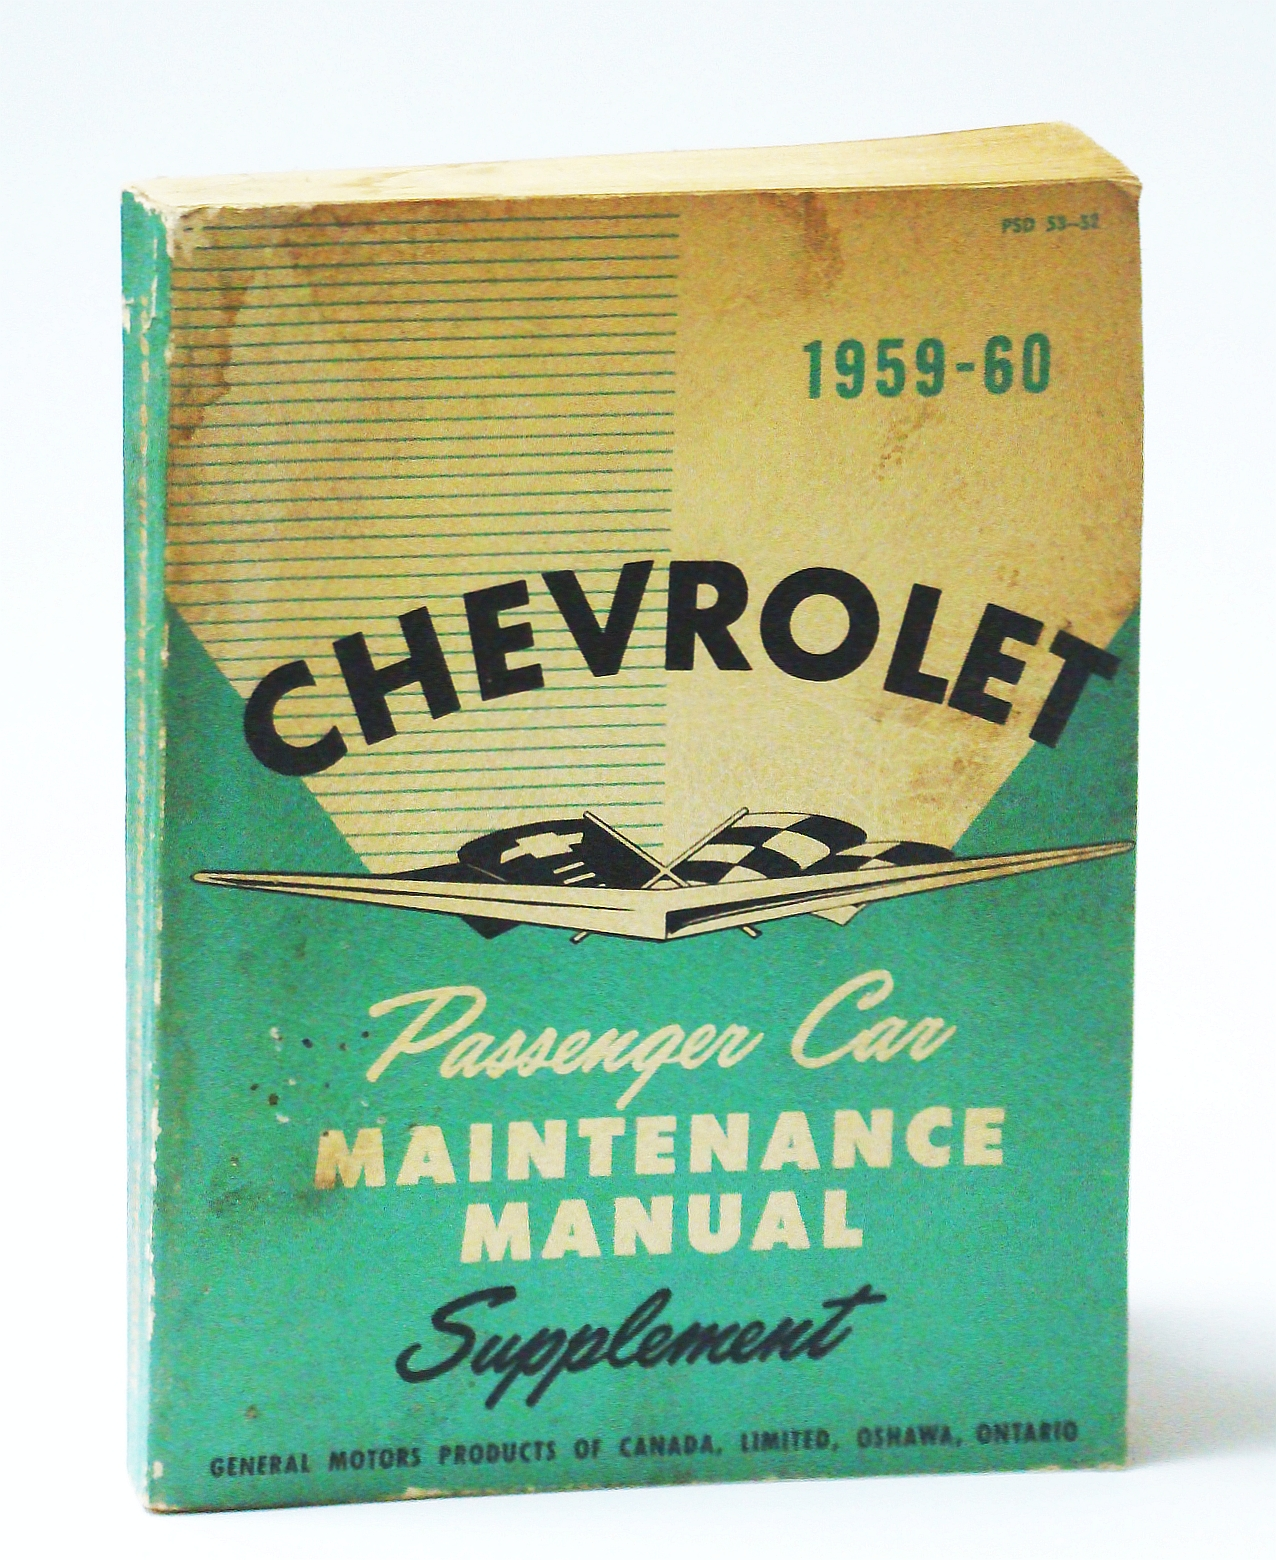 Image for Chevrolet 1959-60 (1960) Passenger Car Maintenance Manual Supplement (PSD 53-52)